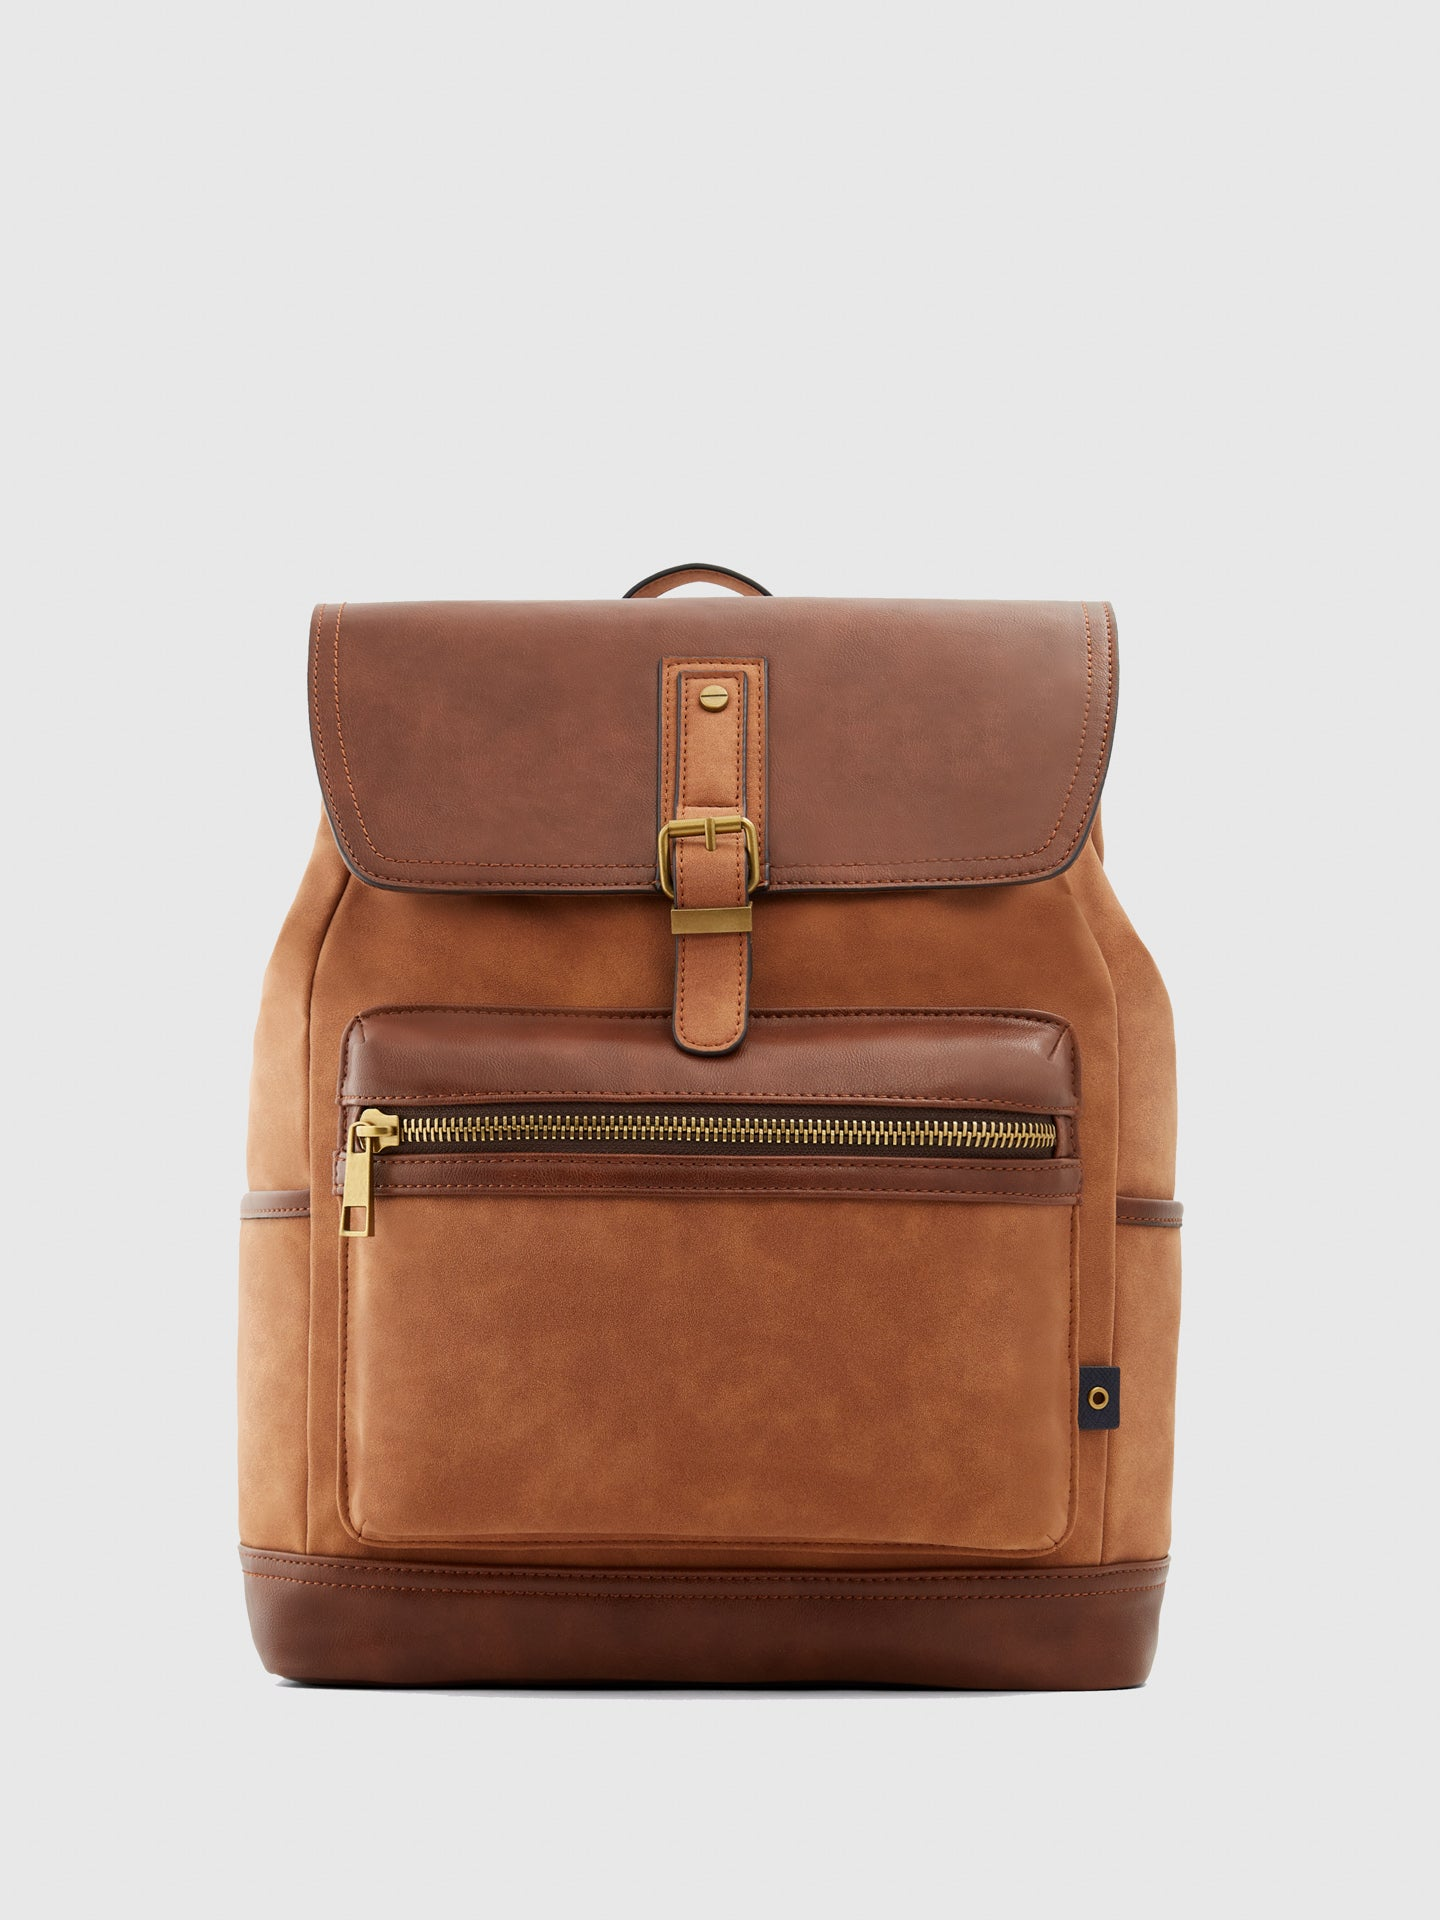 Aldo Brown Backpack